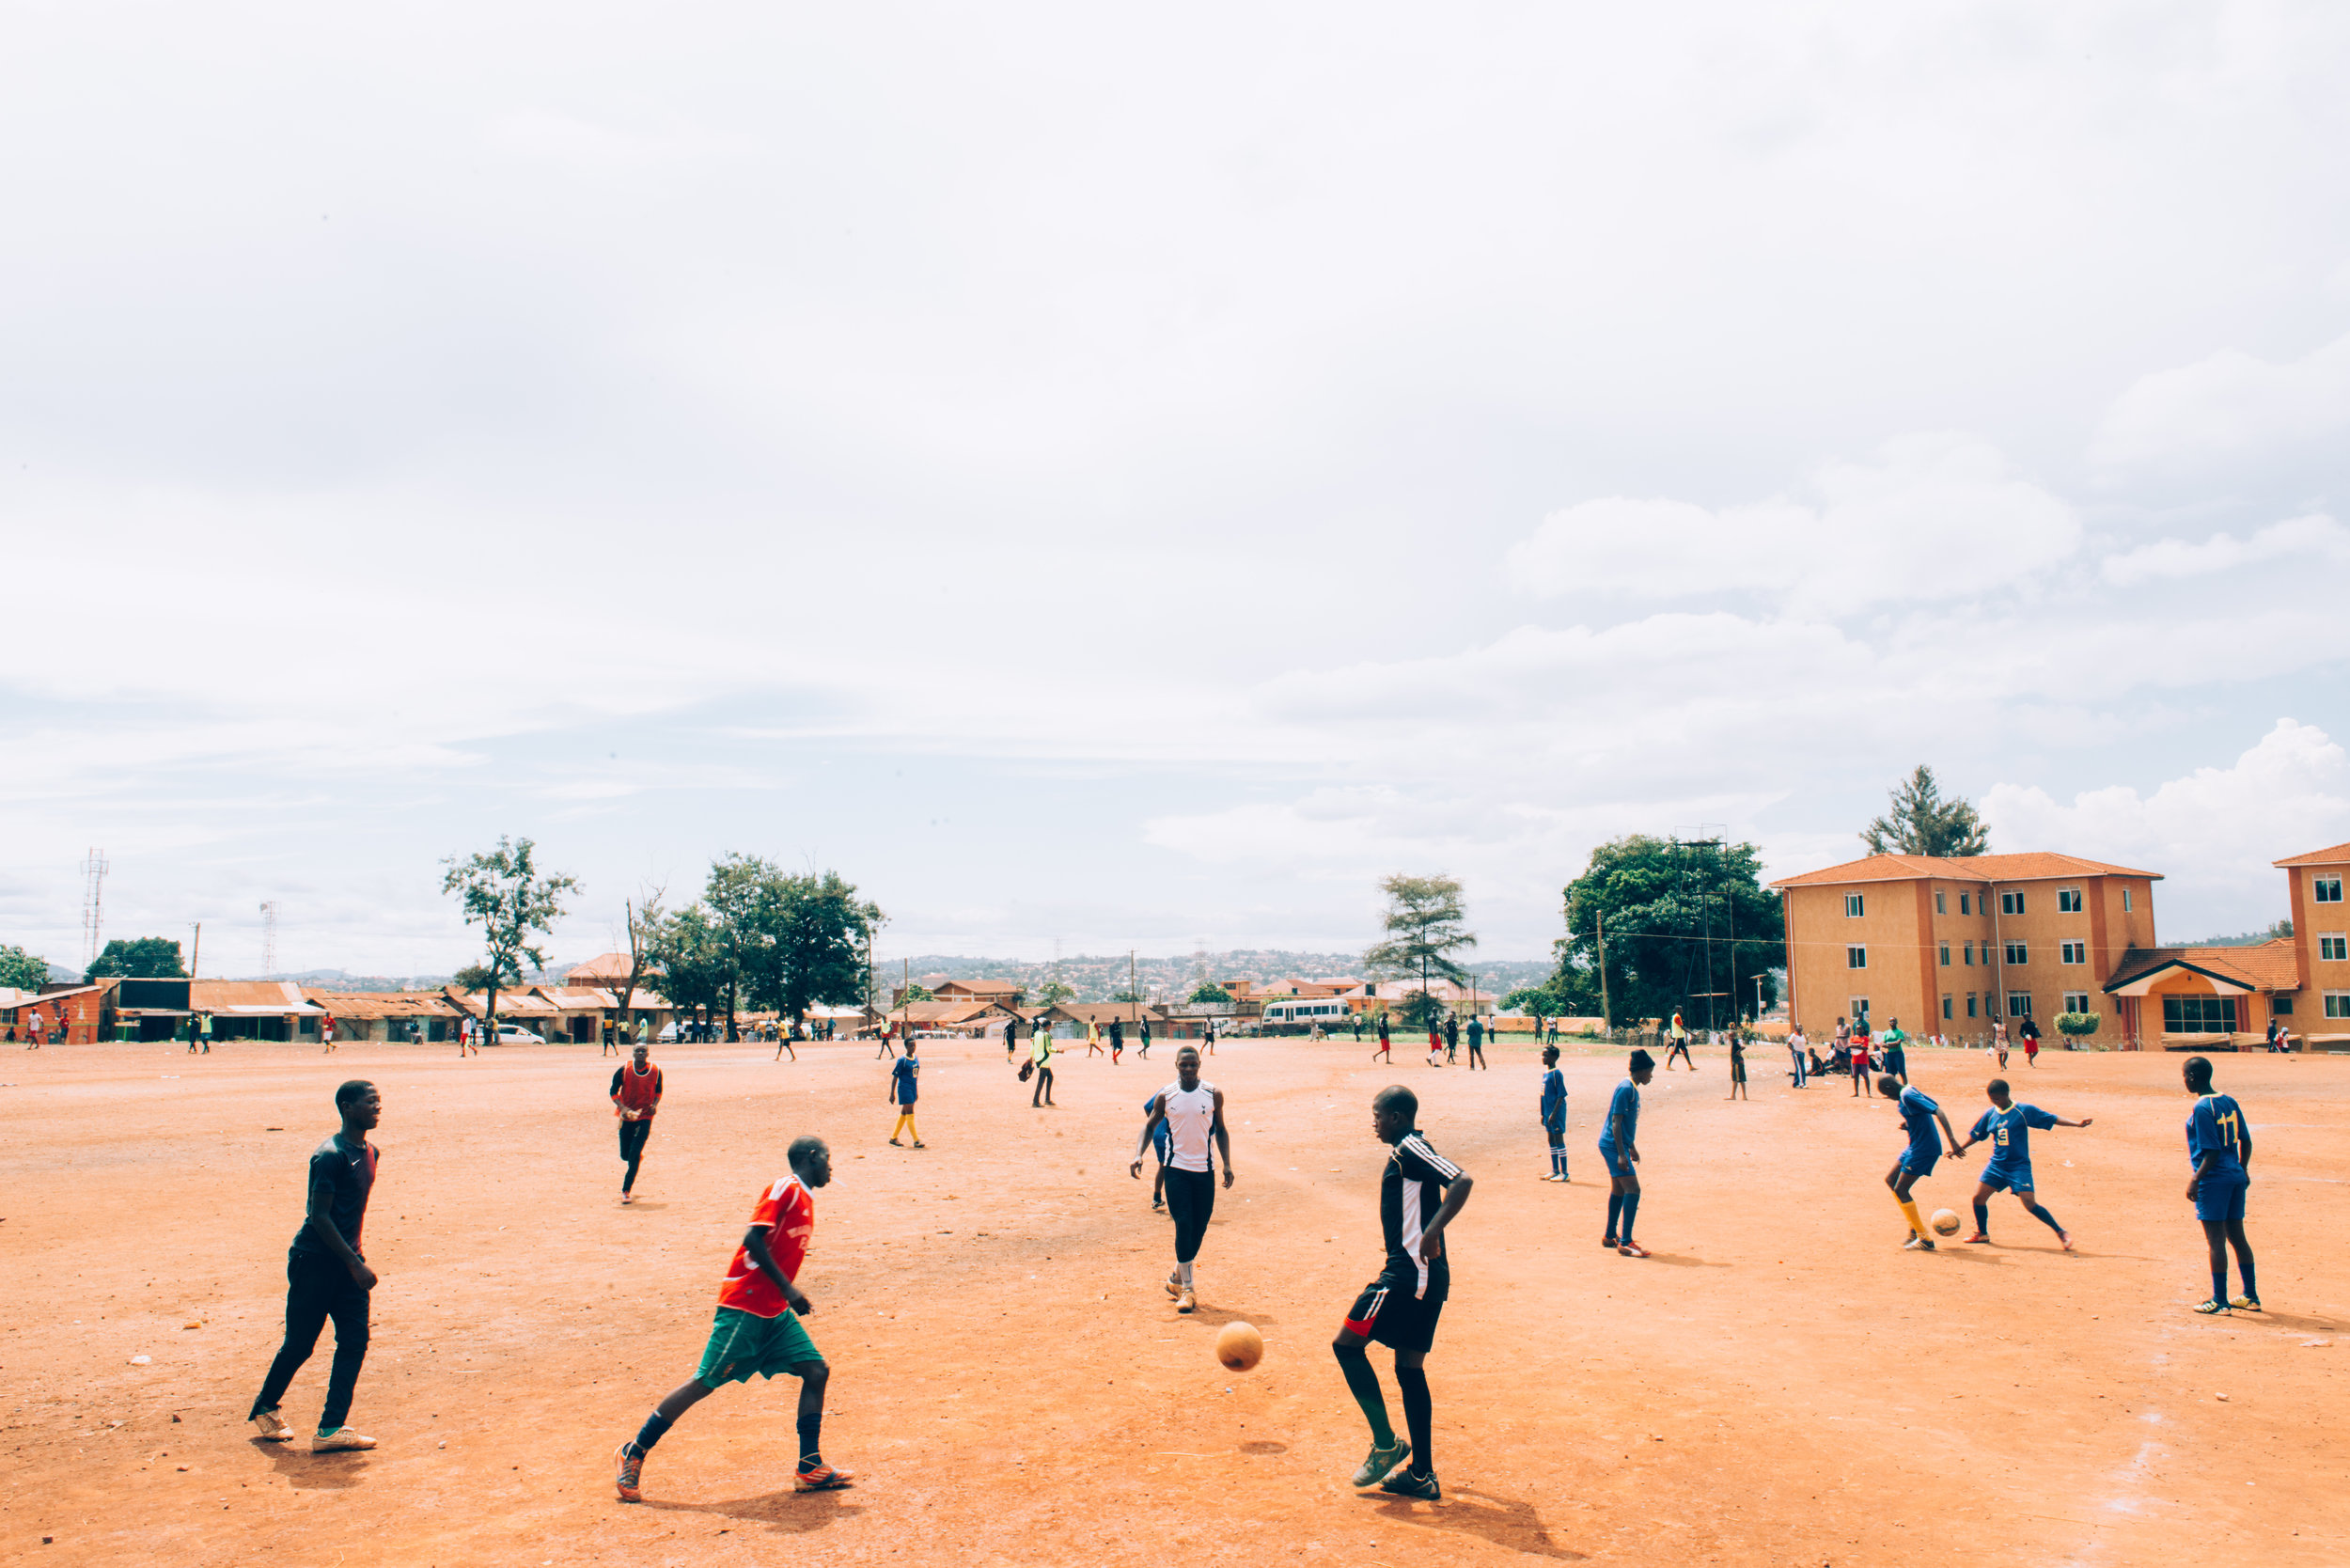 Photo by Kenya-Jade Pinto on assignment for Tackle Africa and PWB